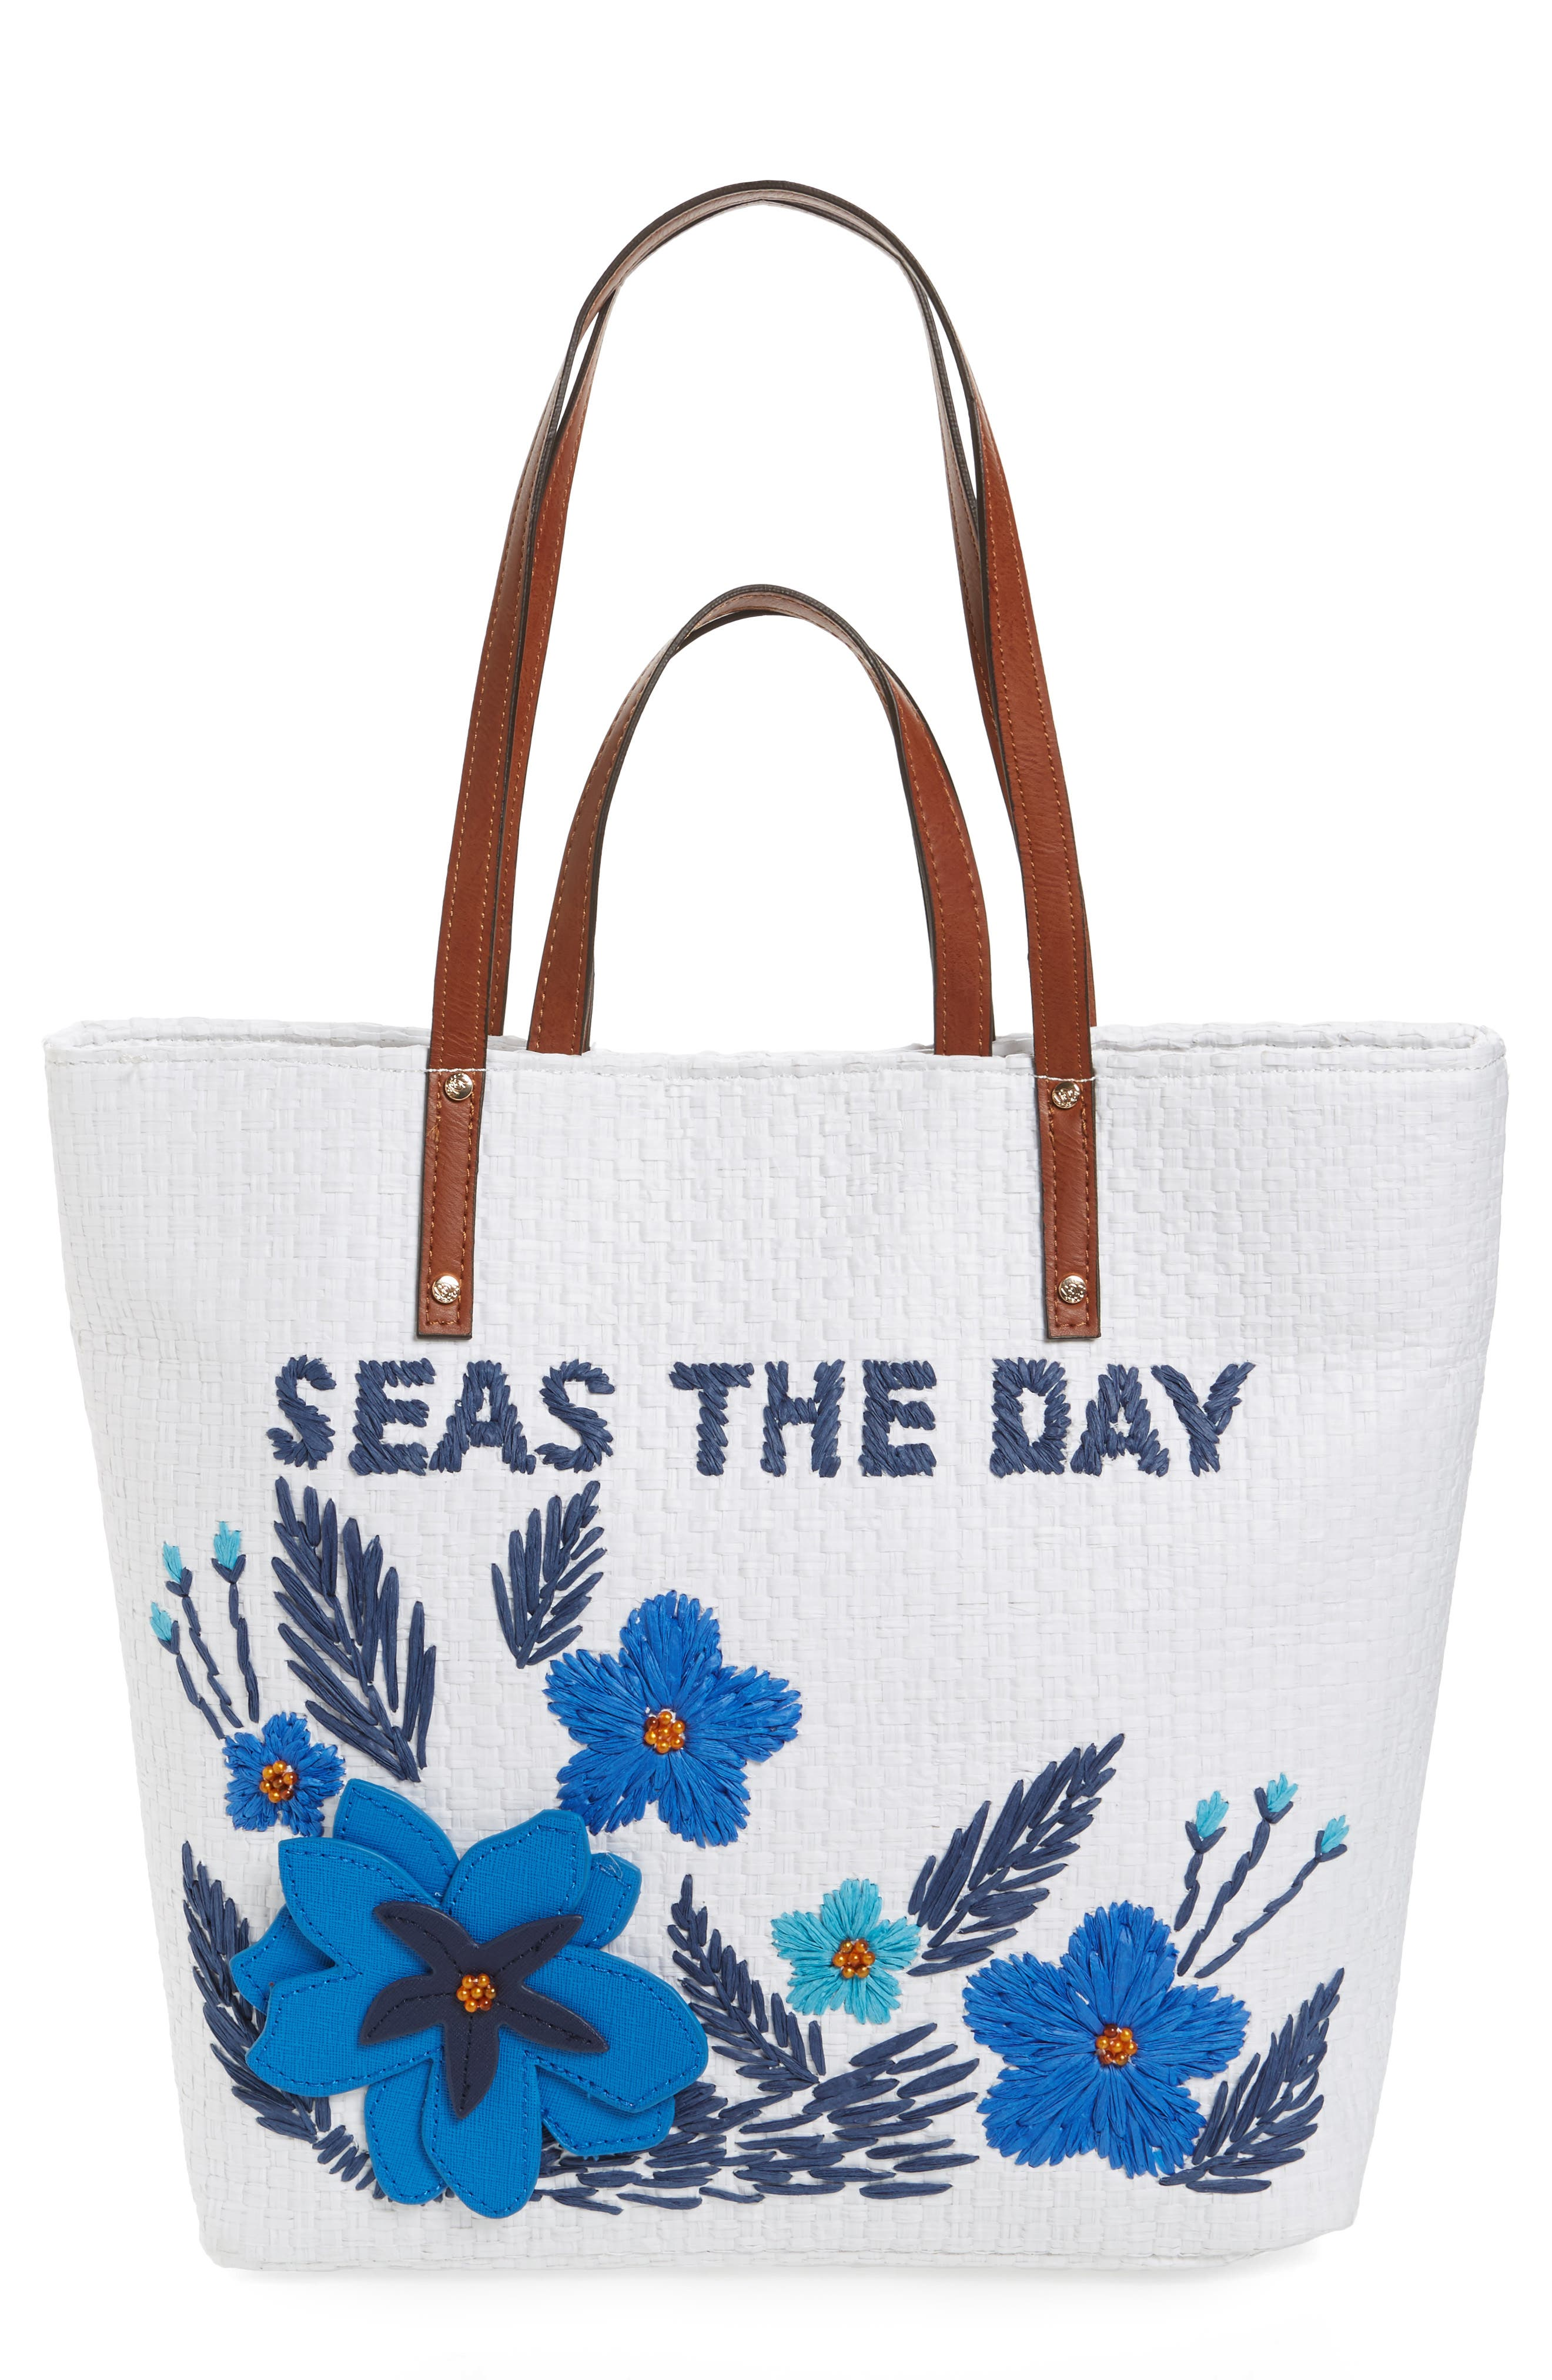 Athen - Seas the Day Embroidered Straw Tote,                             Main thumbnail 1, color,                             400